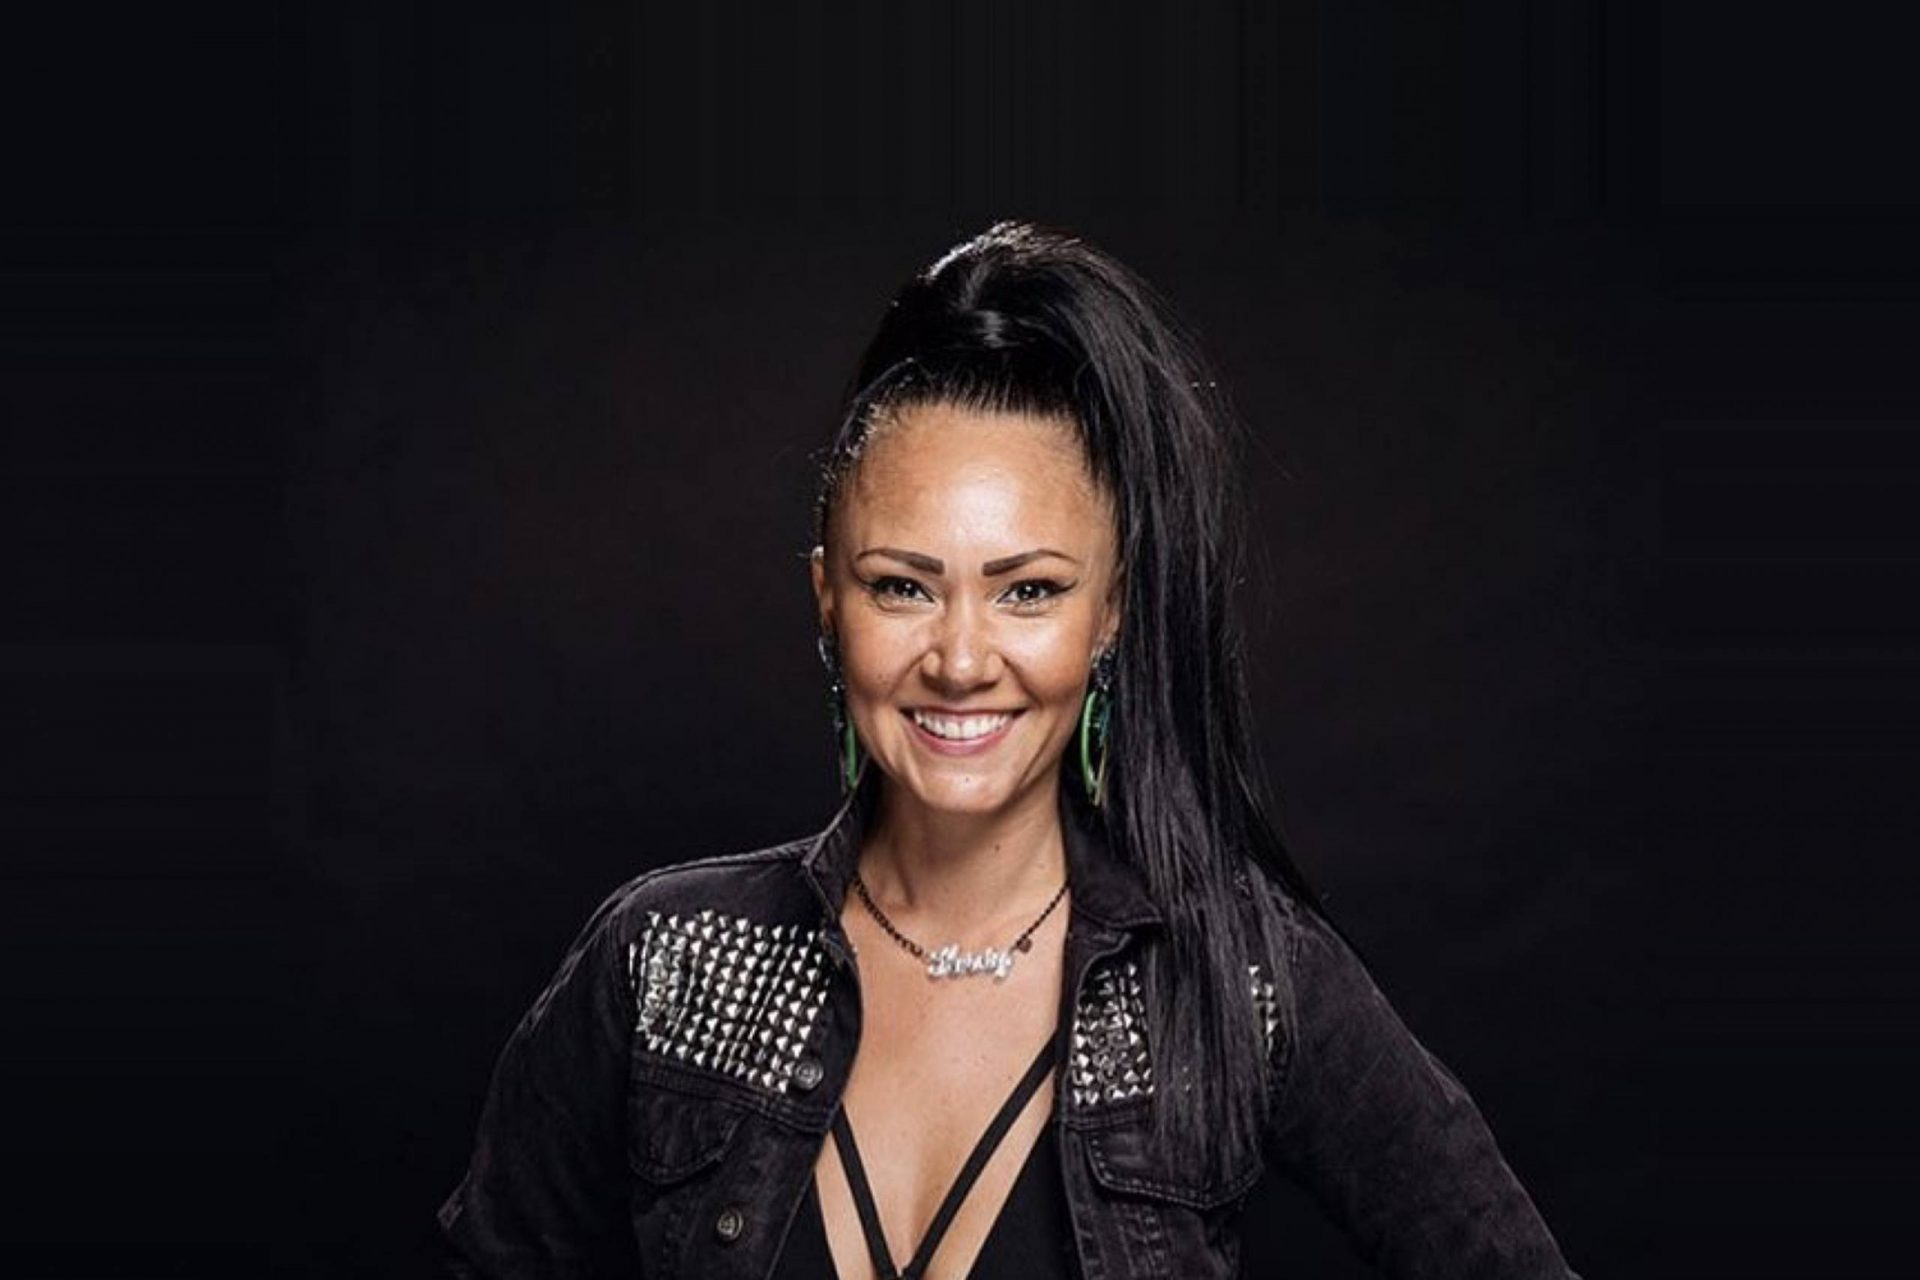 Headshot of a woman with long black hair in pony tail smiling. Black background.